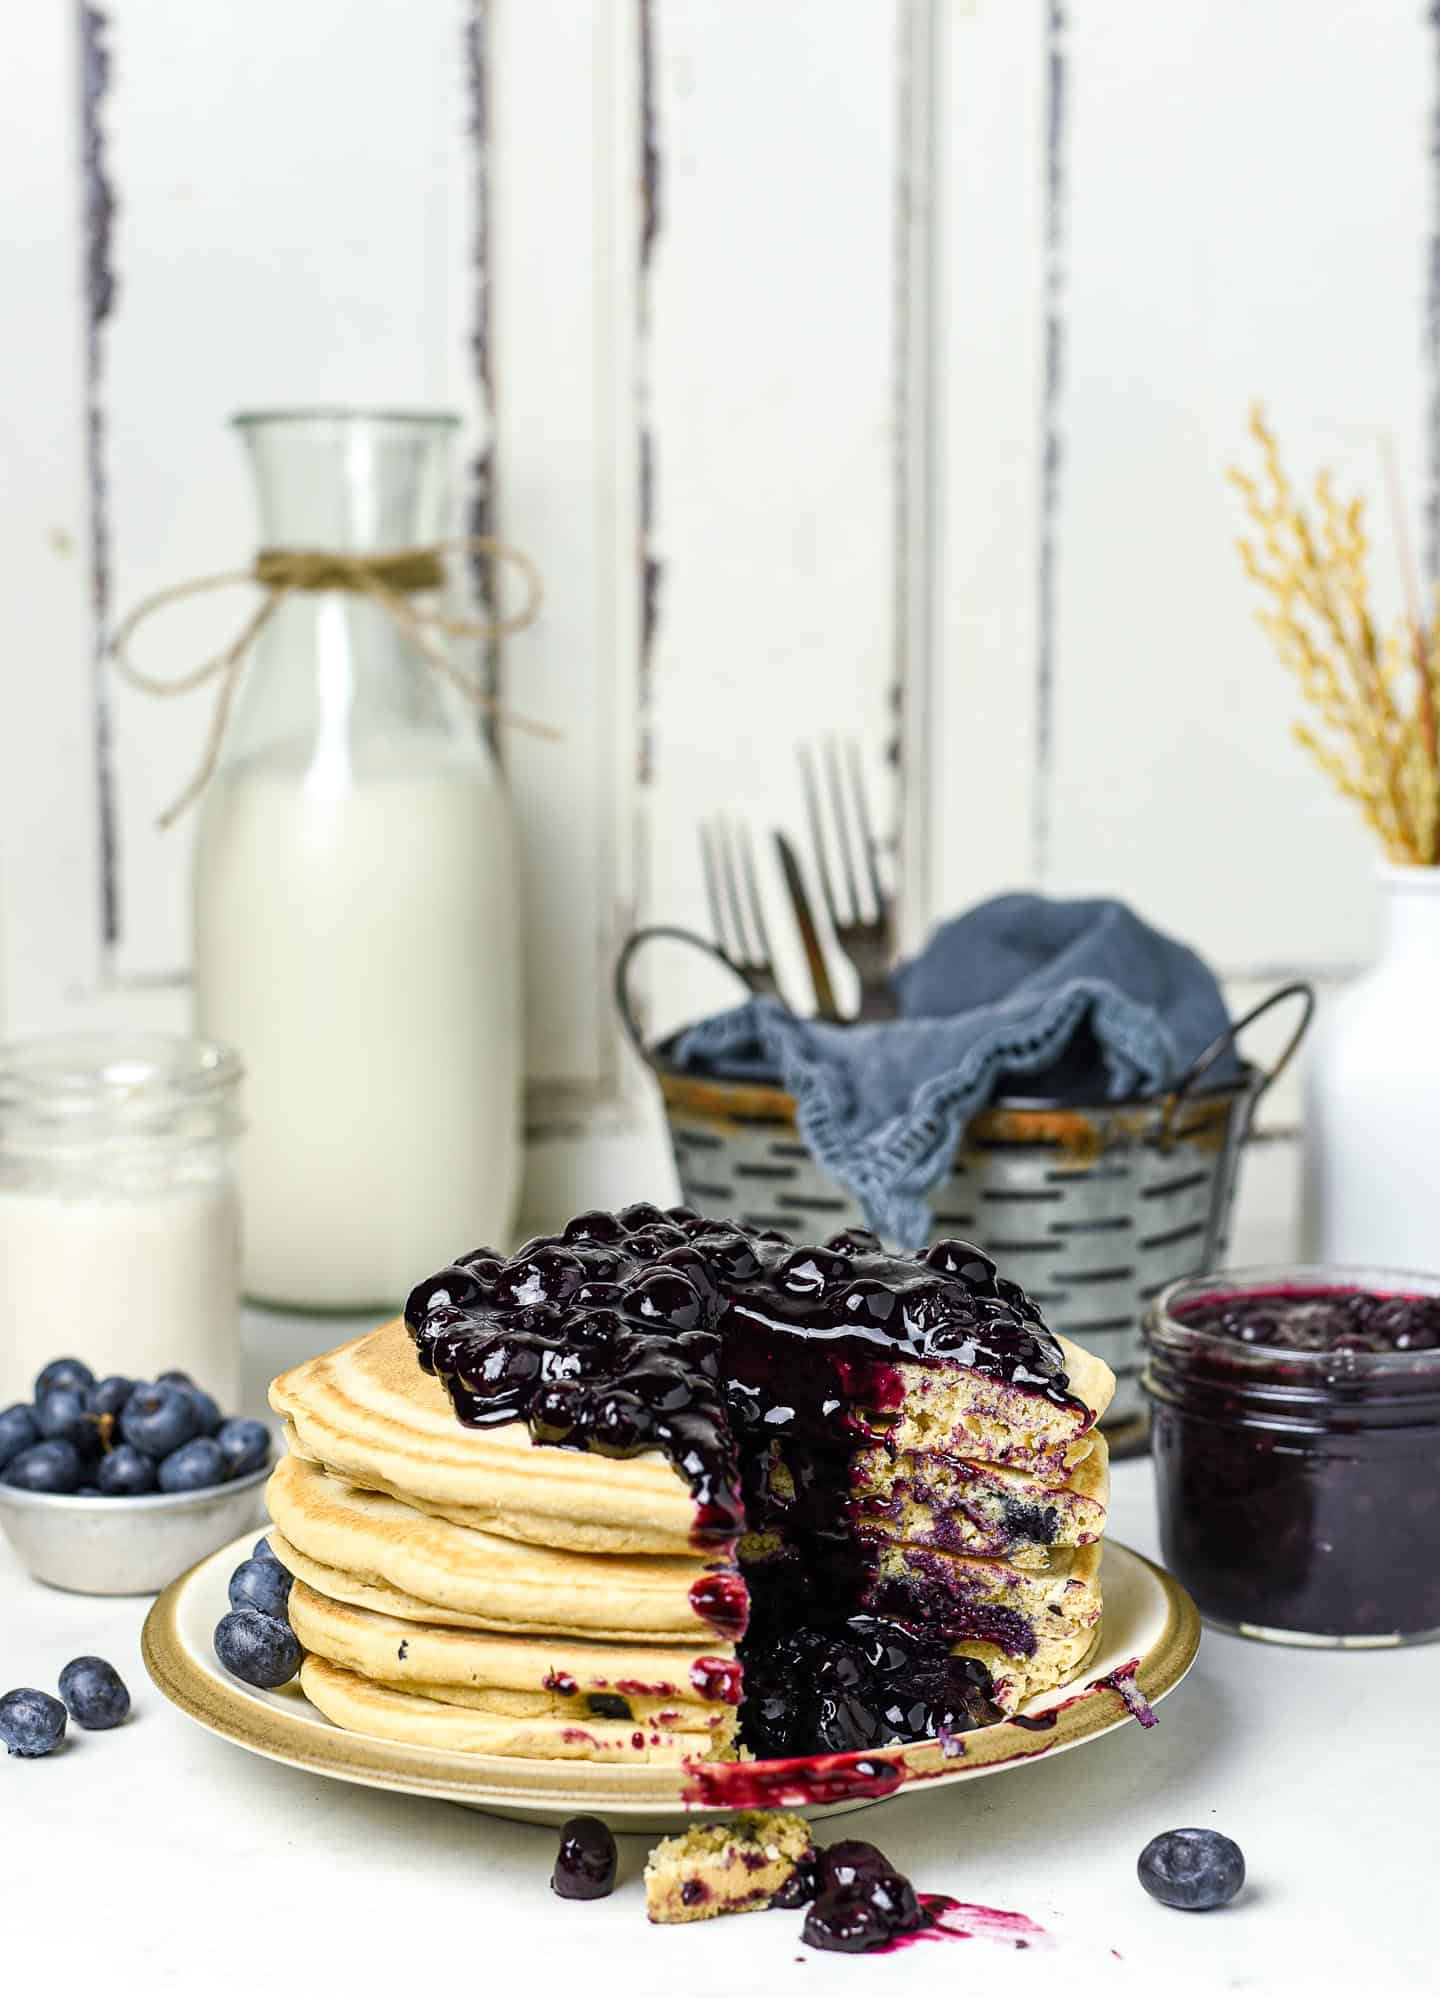 Enjoy this healthy Blueberry Compote on top of pancakes, waffles, fruit, or your favorite frozen dessert. It's so easy! All you need are 4 ingredients and less than 20 minutes to make this amazing blueberry sauce recipe.